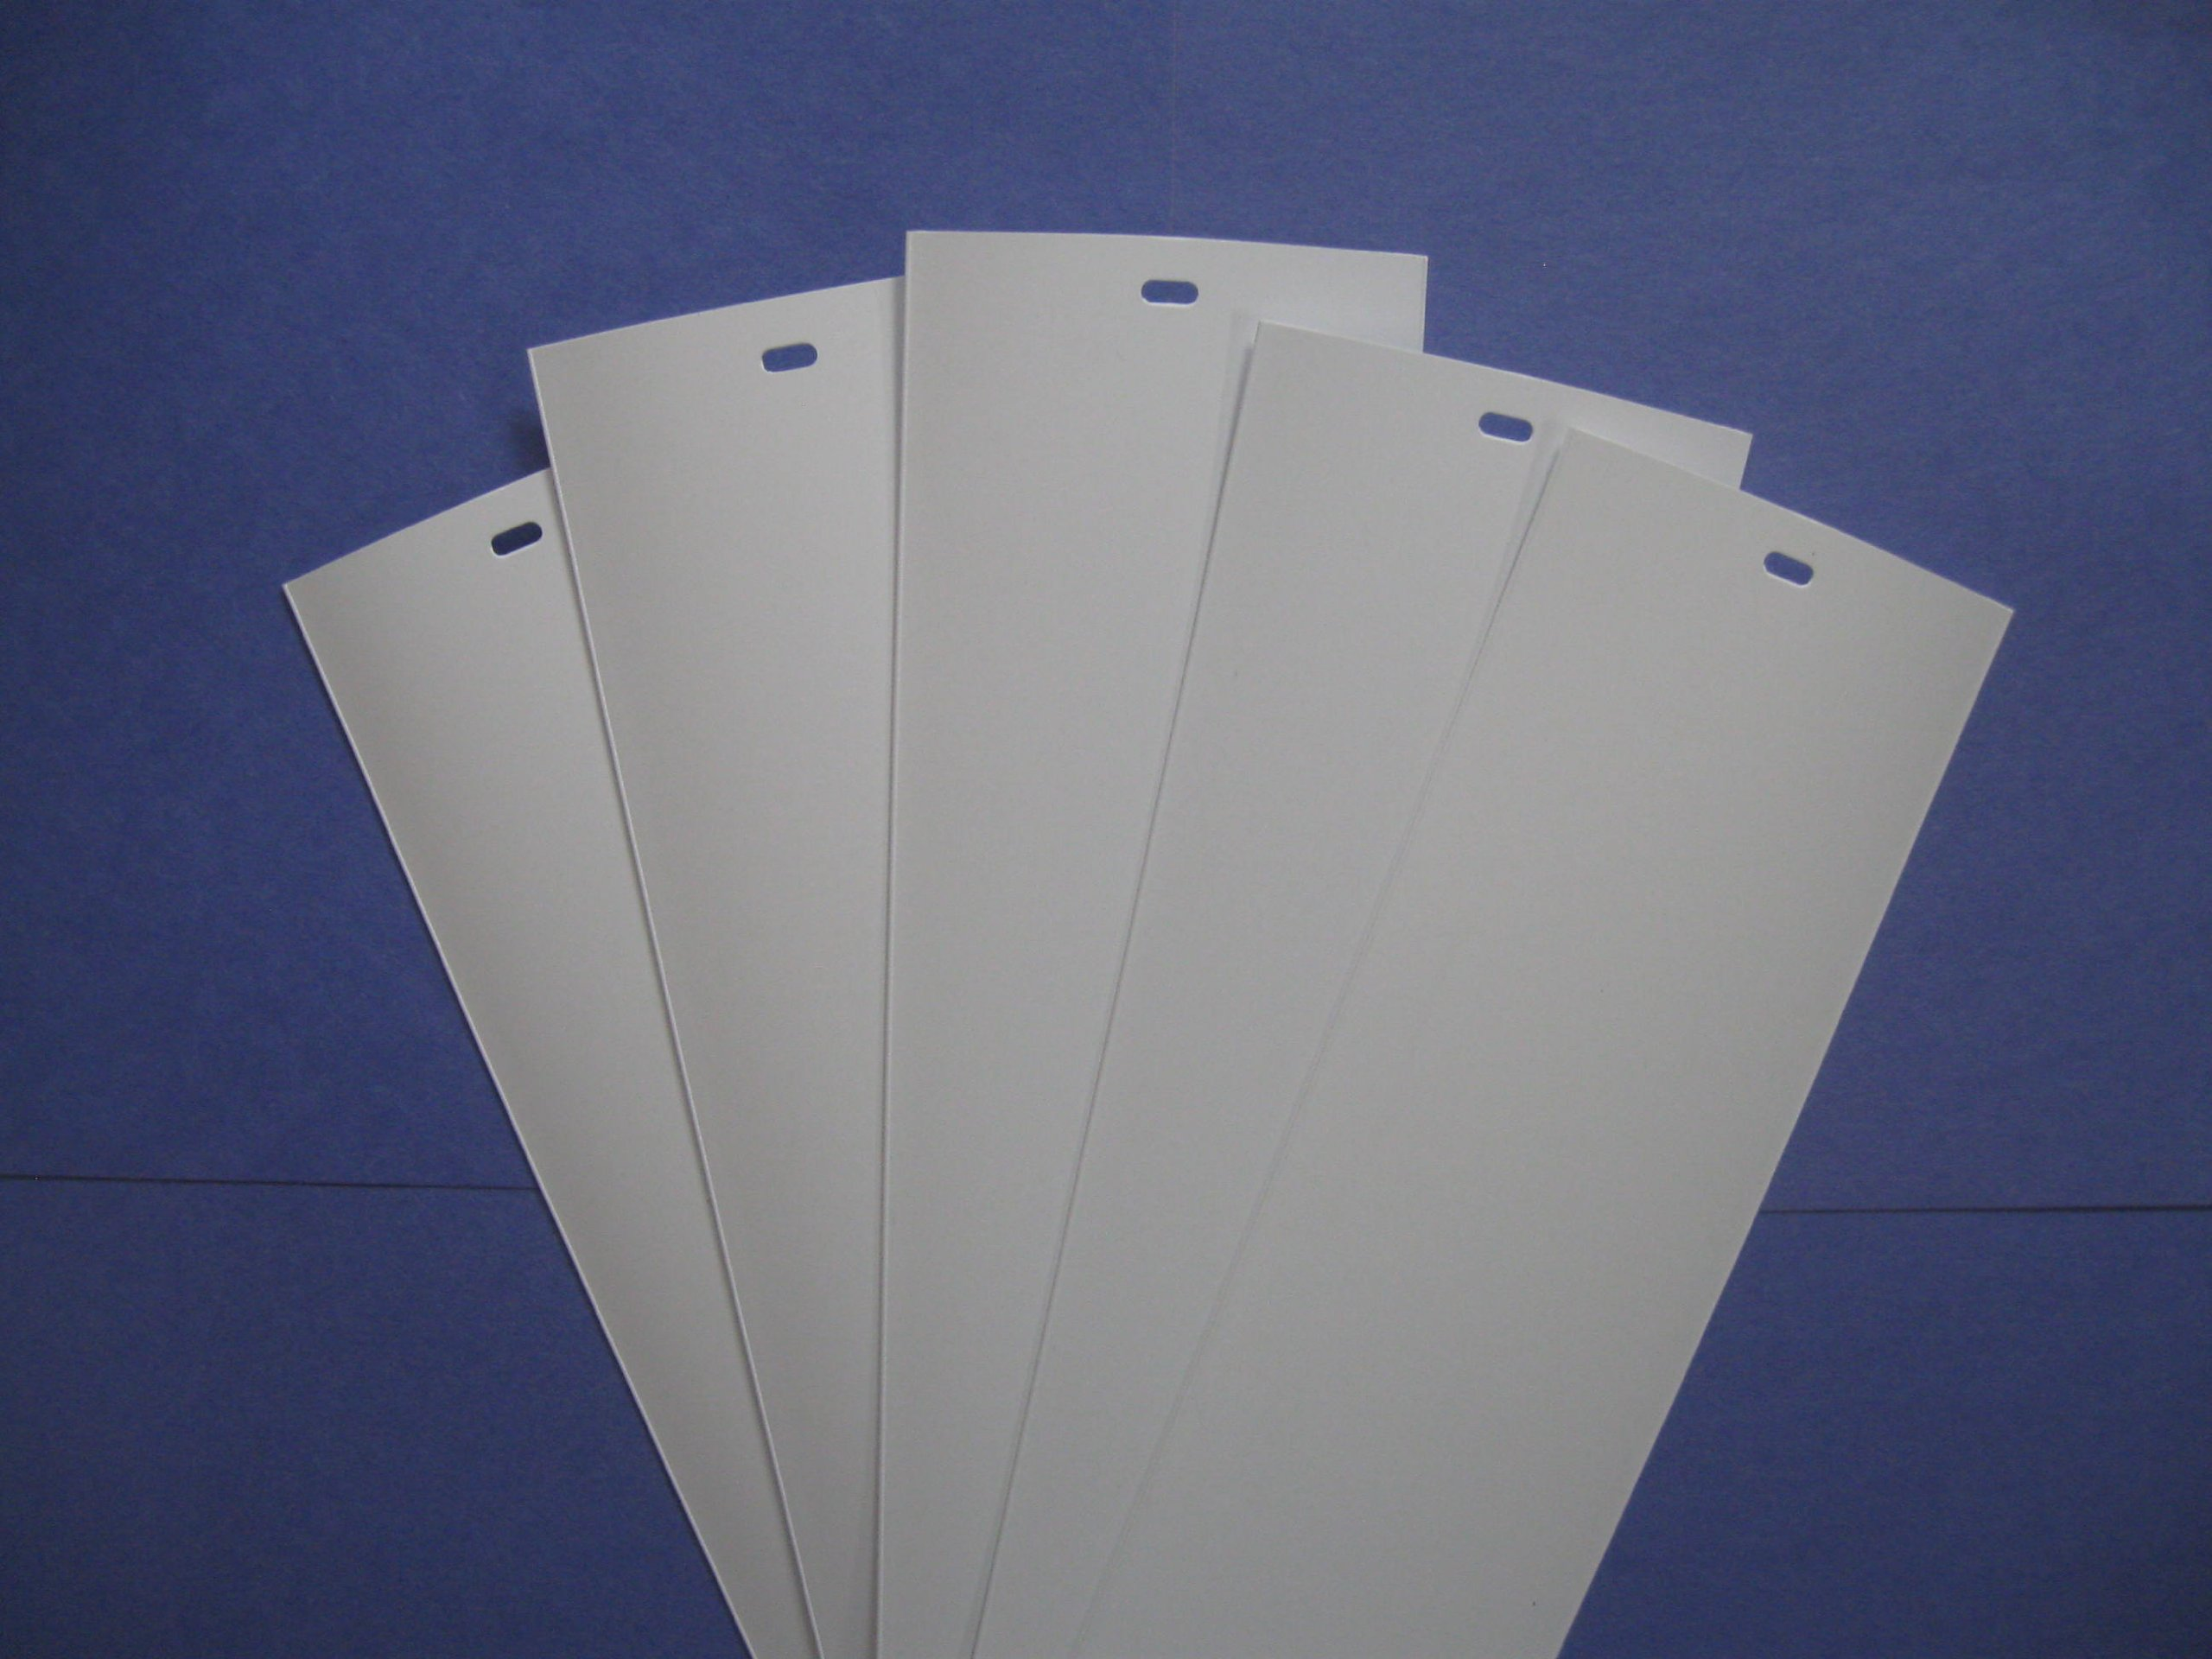 PVC Vertical Blind Replacement Slat White or Ivory (Qty: 5 Pk) 100 inches high (Long) X 3 1/2 inches Wide (100'' x 3 1/2'') (White) by Royal Window Coverings